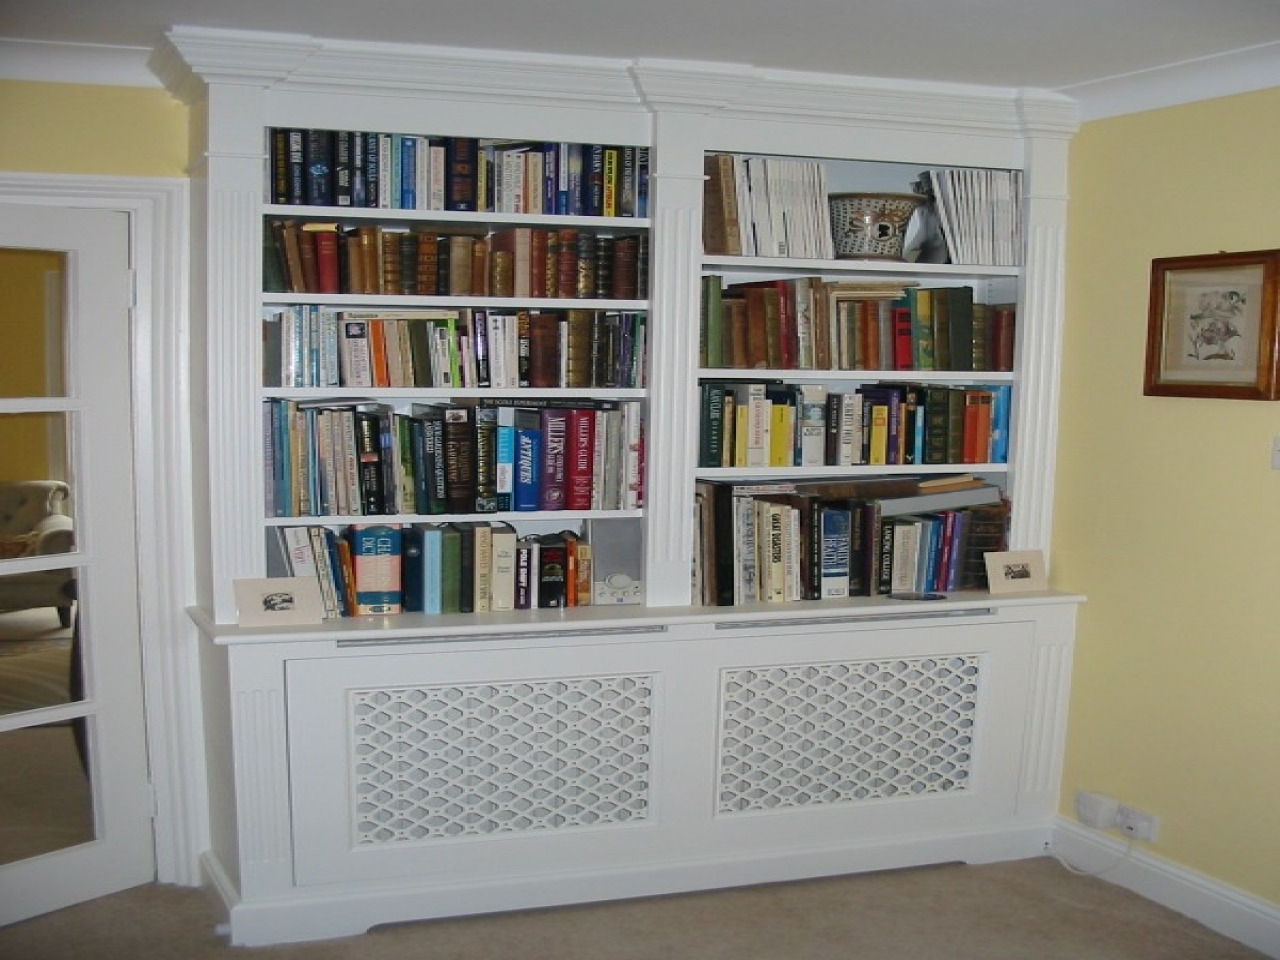 Cupboard Bookcase Radiator Bookcase Cover Over Radiator Cover Regarding Radiator Covers And Bookcases (#1 of 15)